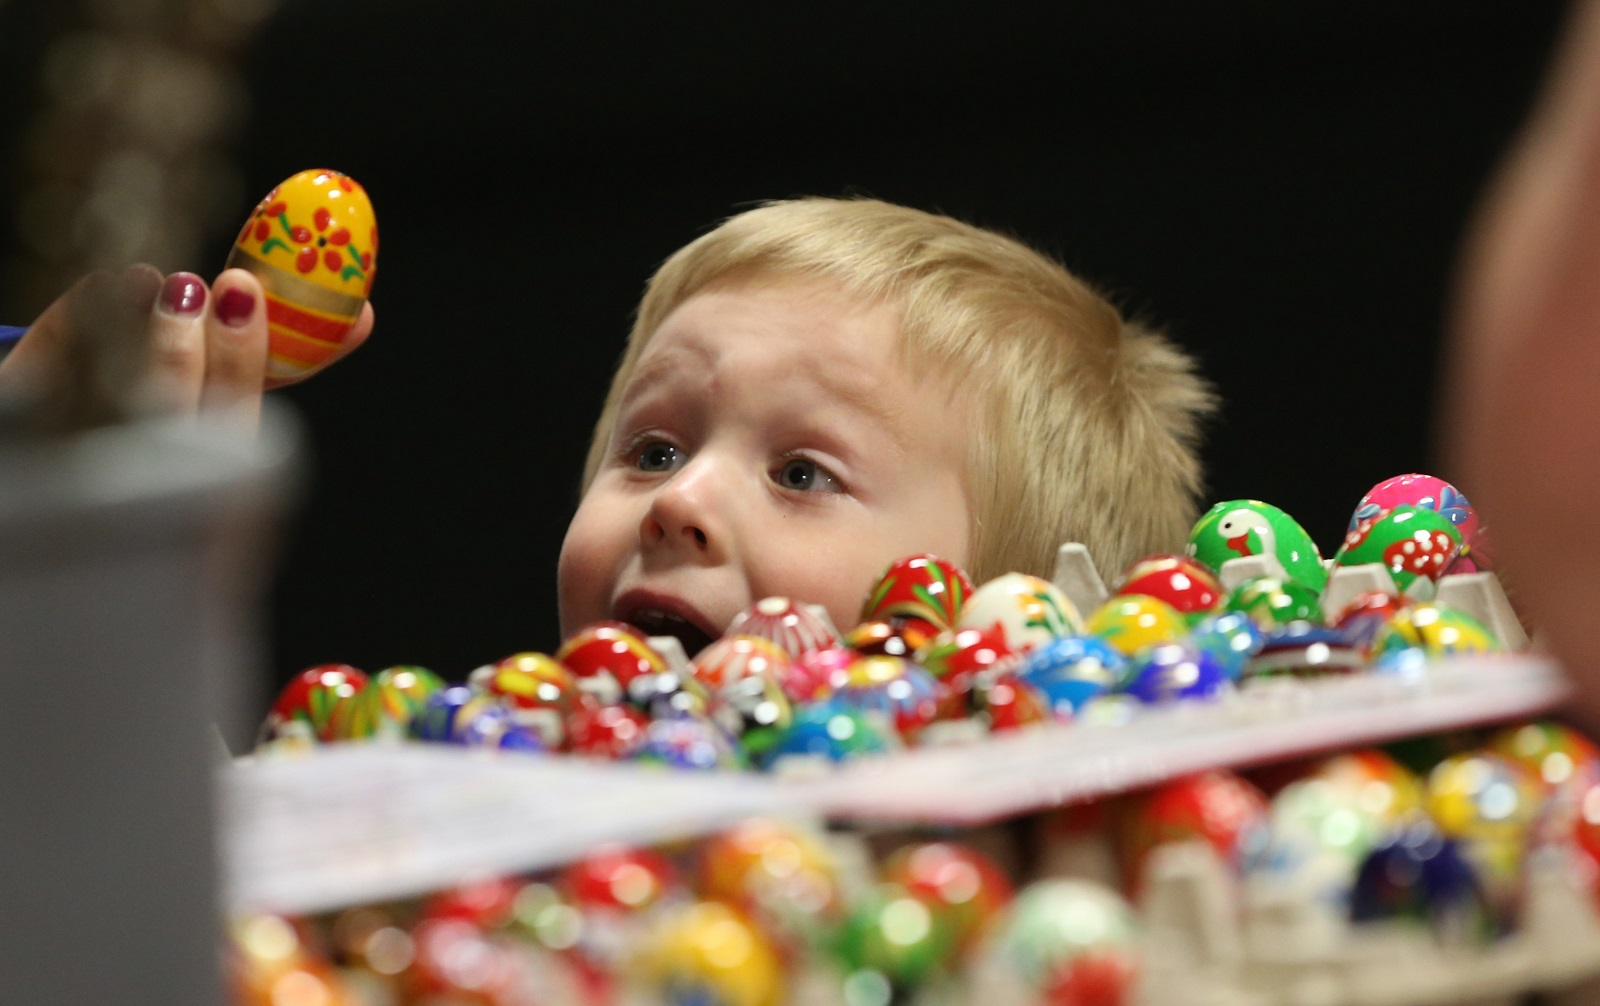 Kyle Michalek, 3, gets excited about picking out some Polish wooden eggs with his mom at Lewandowski Produce in the Broadway Market.  (Sharon Cantillon/Buffalo News)